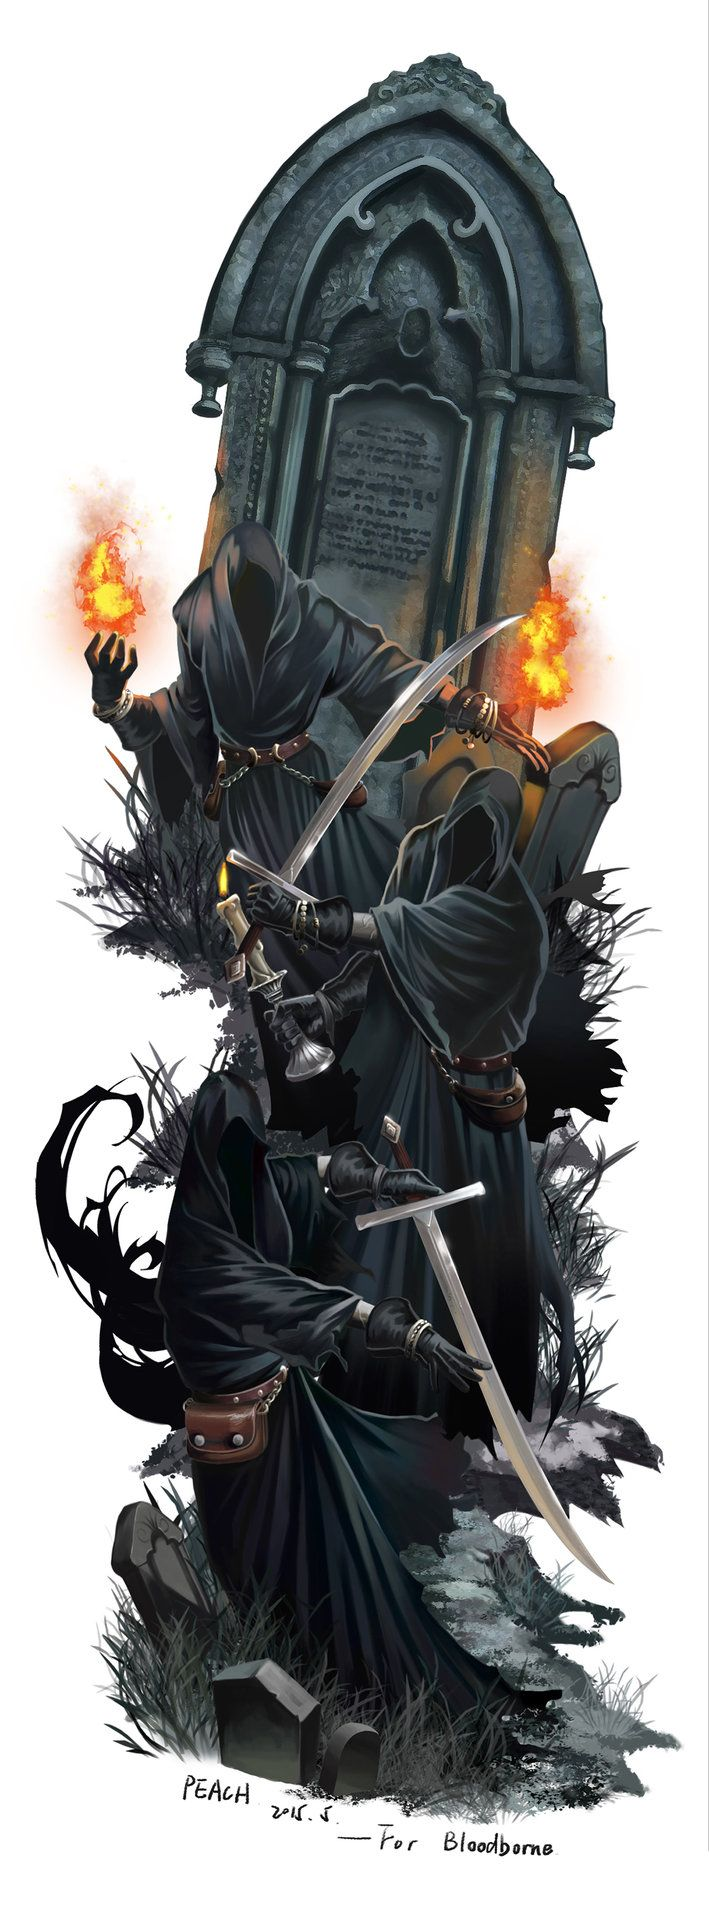 The Kerboros of Malchoir are a conjoined being of great power. They hide their faces beneath great blackhoods.